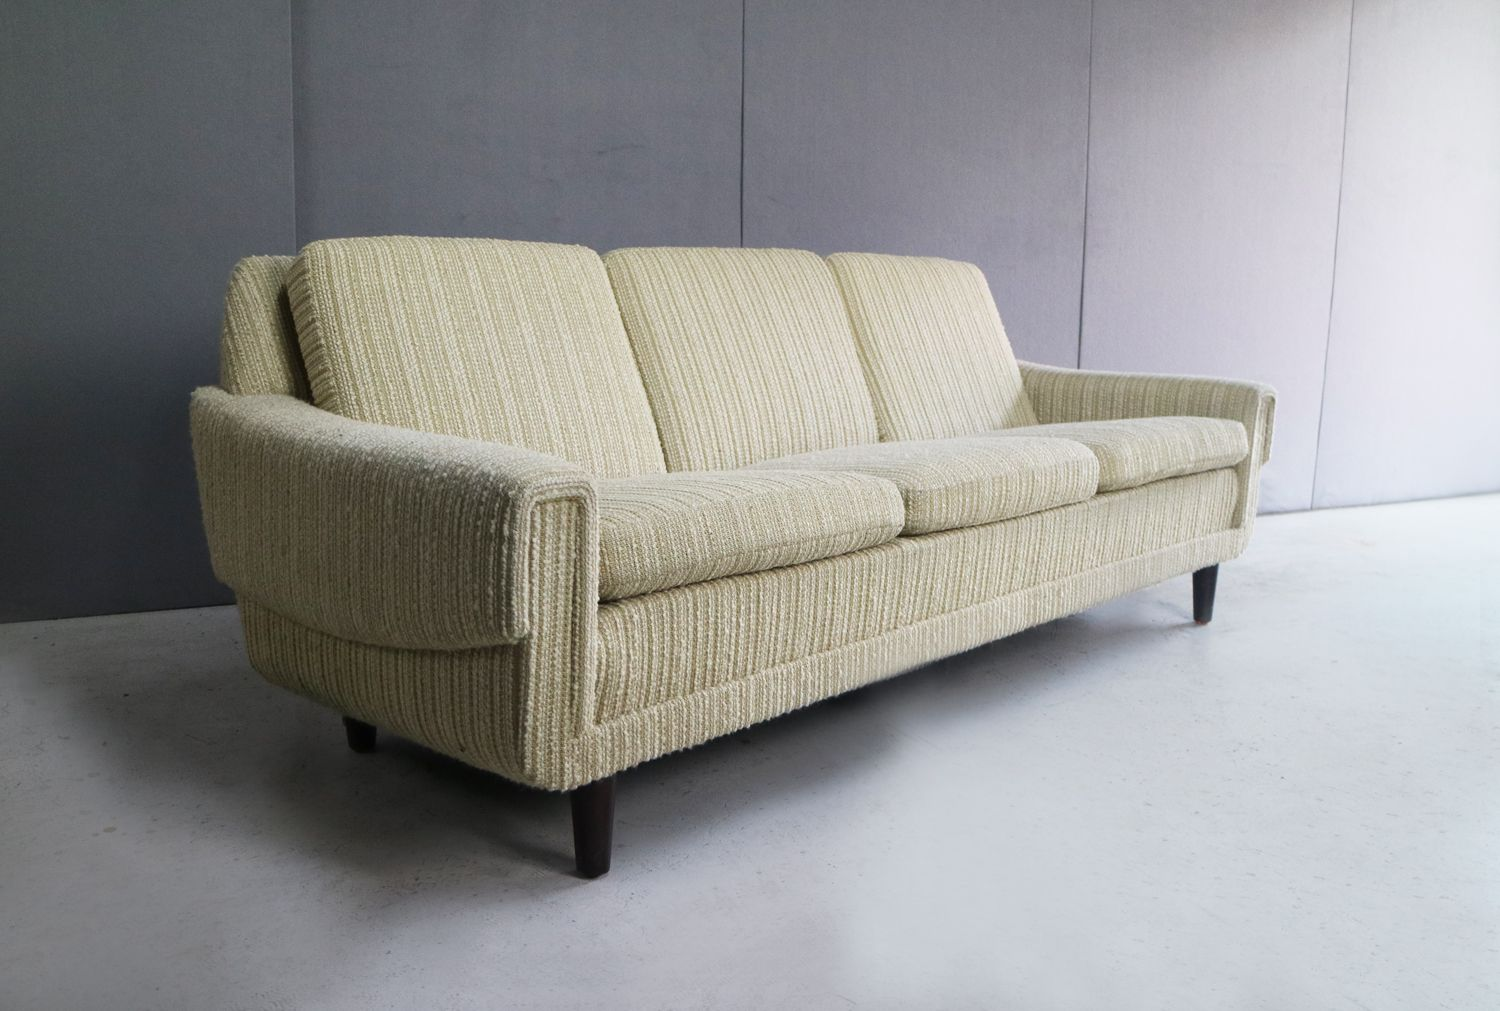 Danish 3 Seater Sofa In Oatmeal Fabric 1970s For Sale At